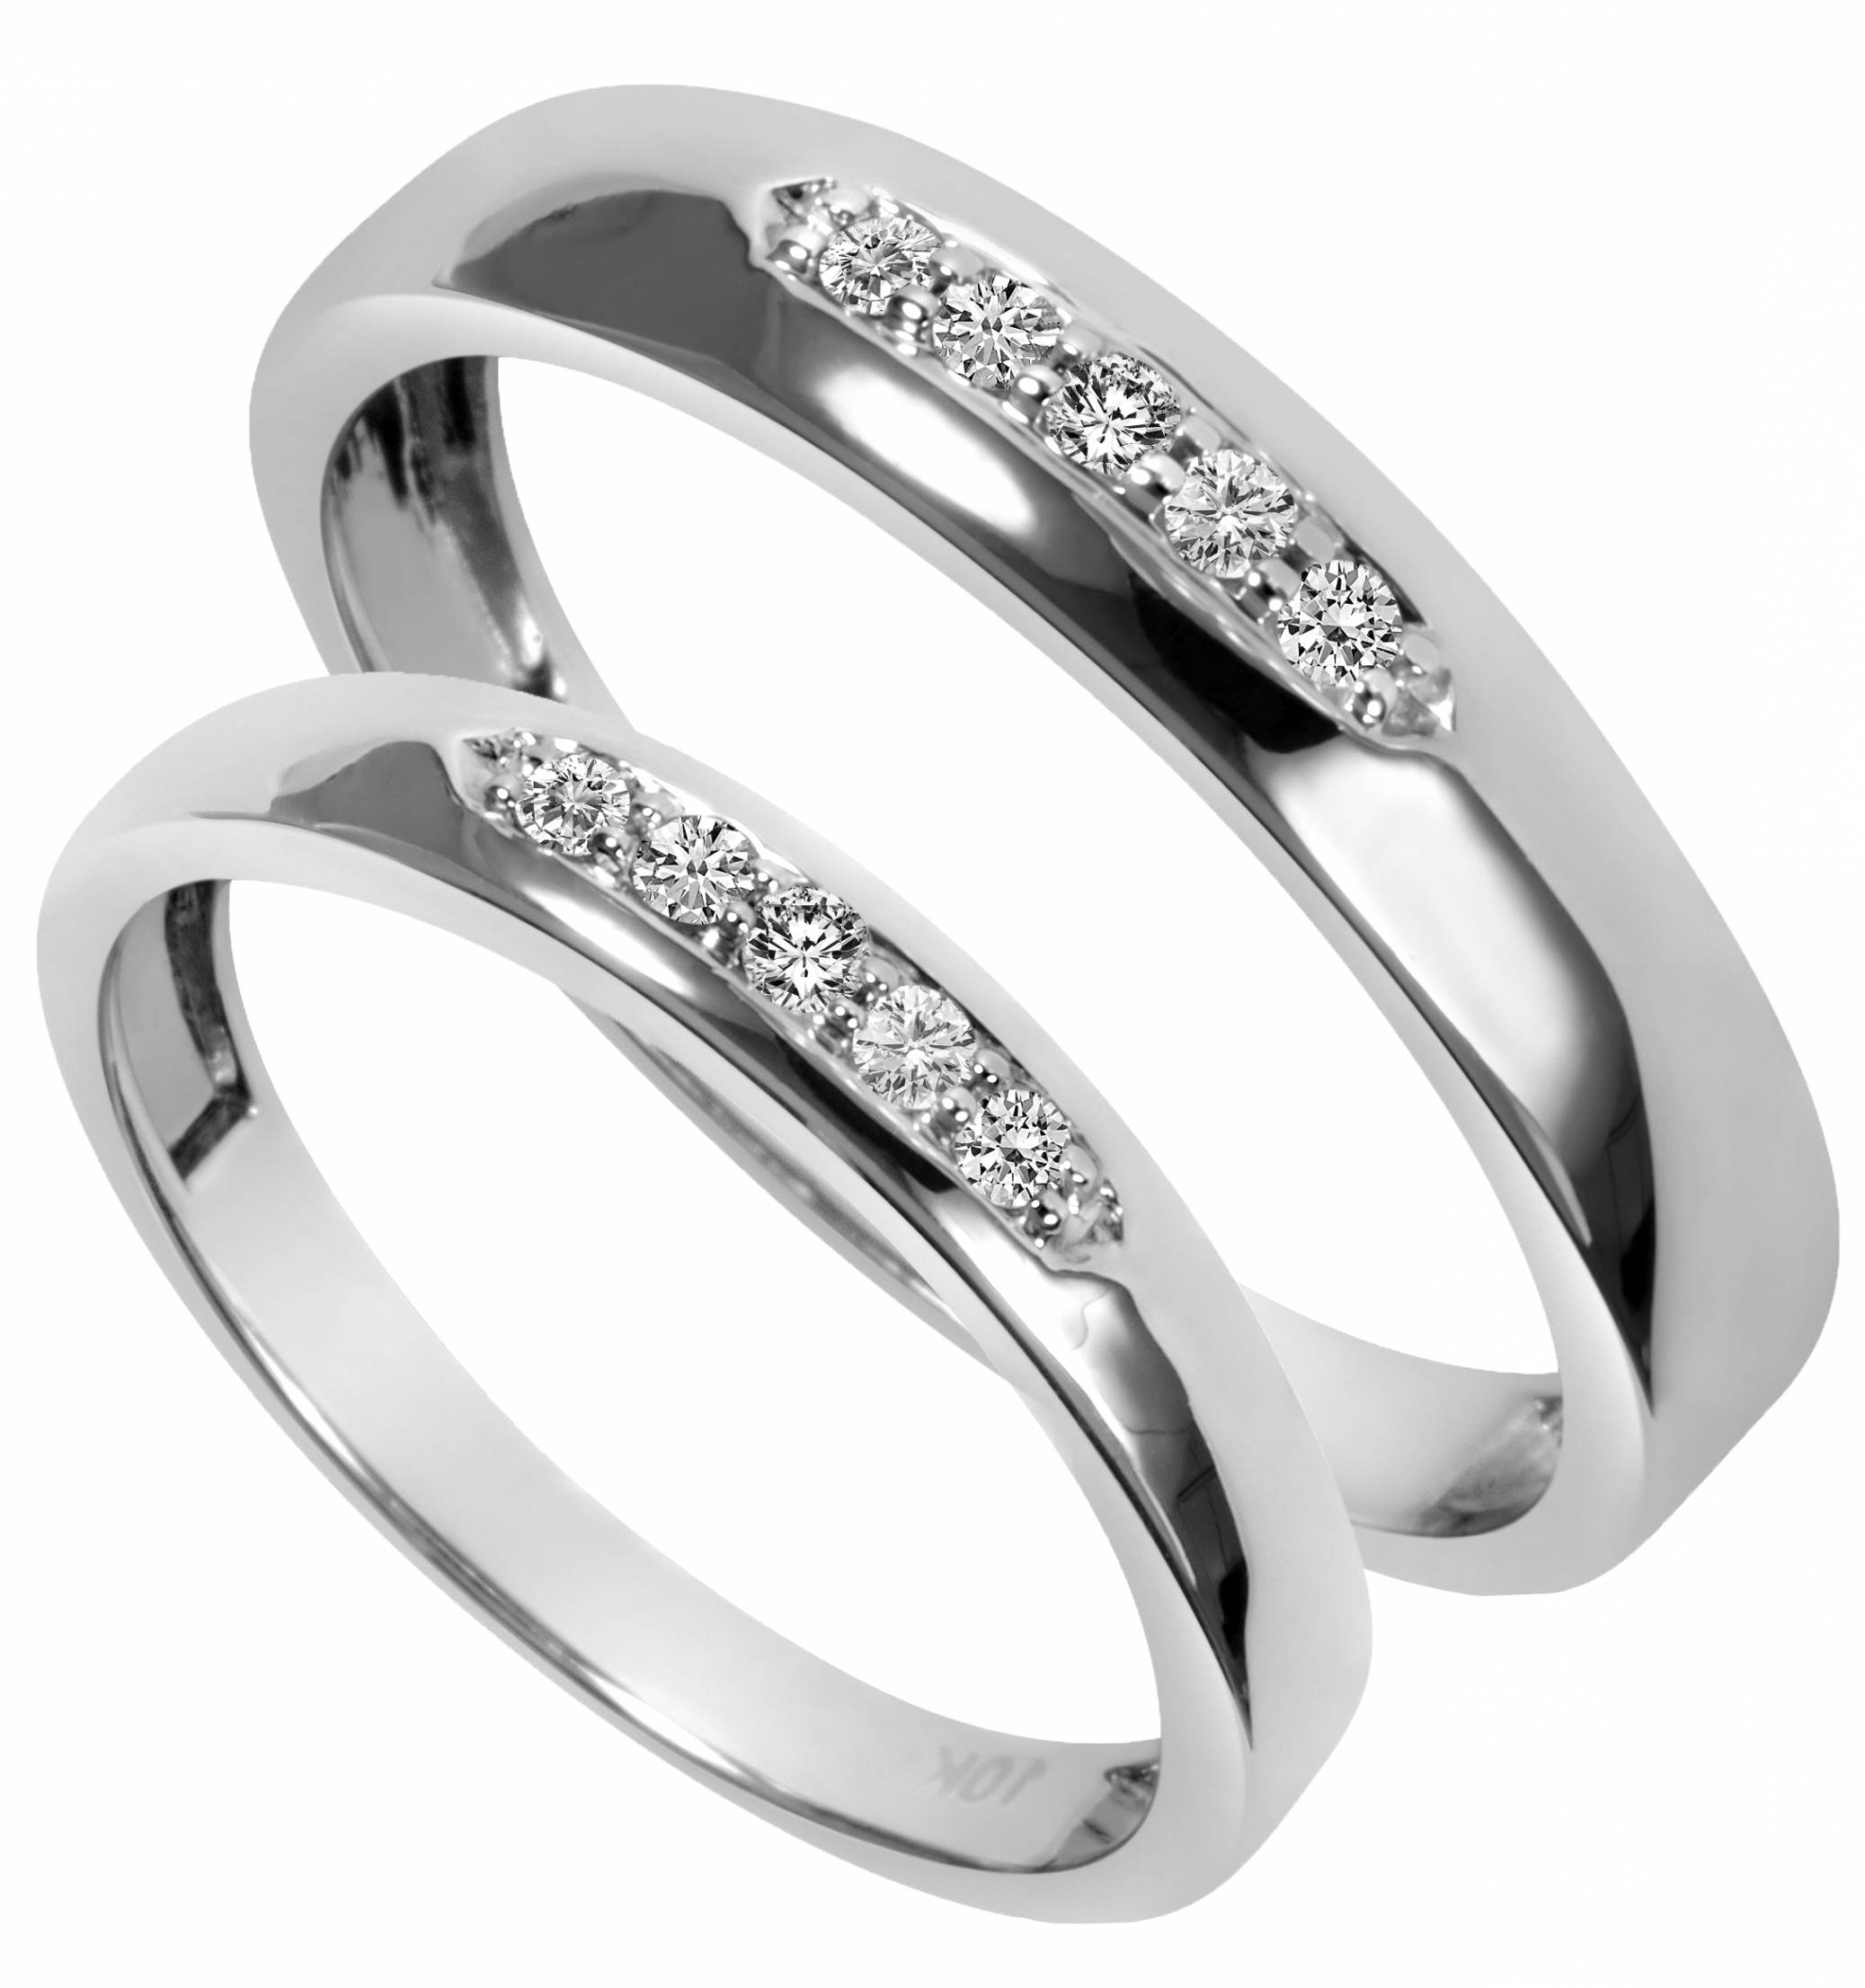 Wedding Rings : Remarkable Wedding Rings Sets His And Hers Picture In Matching Engagement Rings For Him And Her (View 14 of 15)